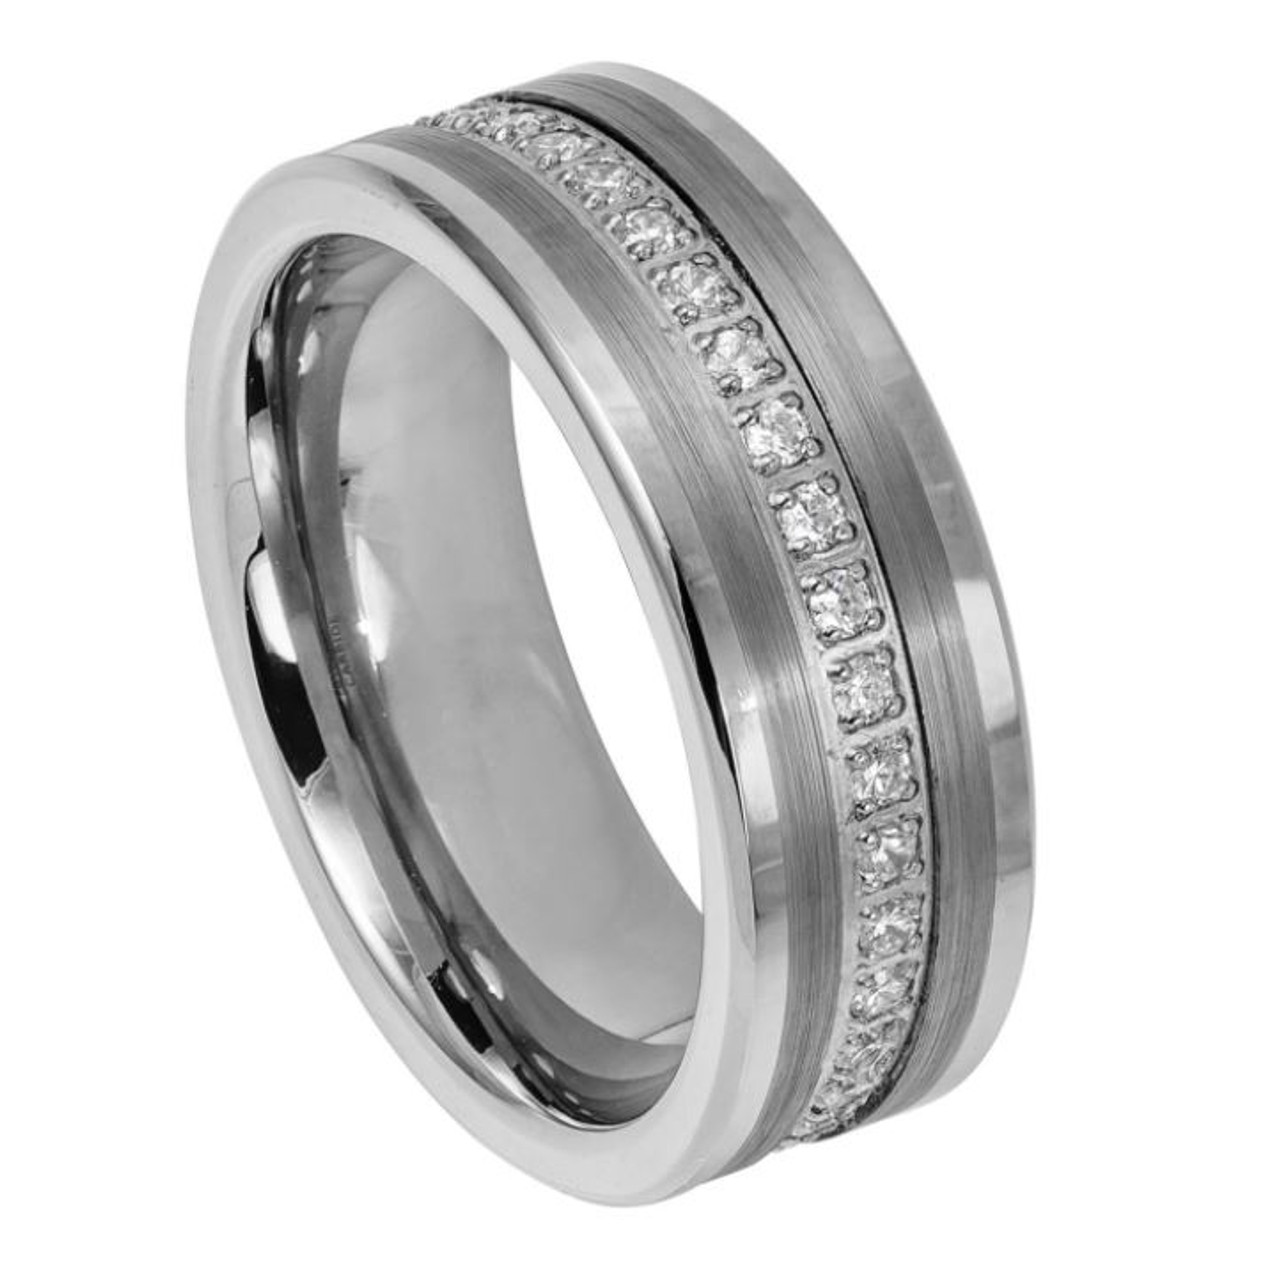 Tungsten Carbide 6mm Wedding Band Polished shiny flat pipe cut style ring